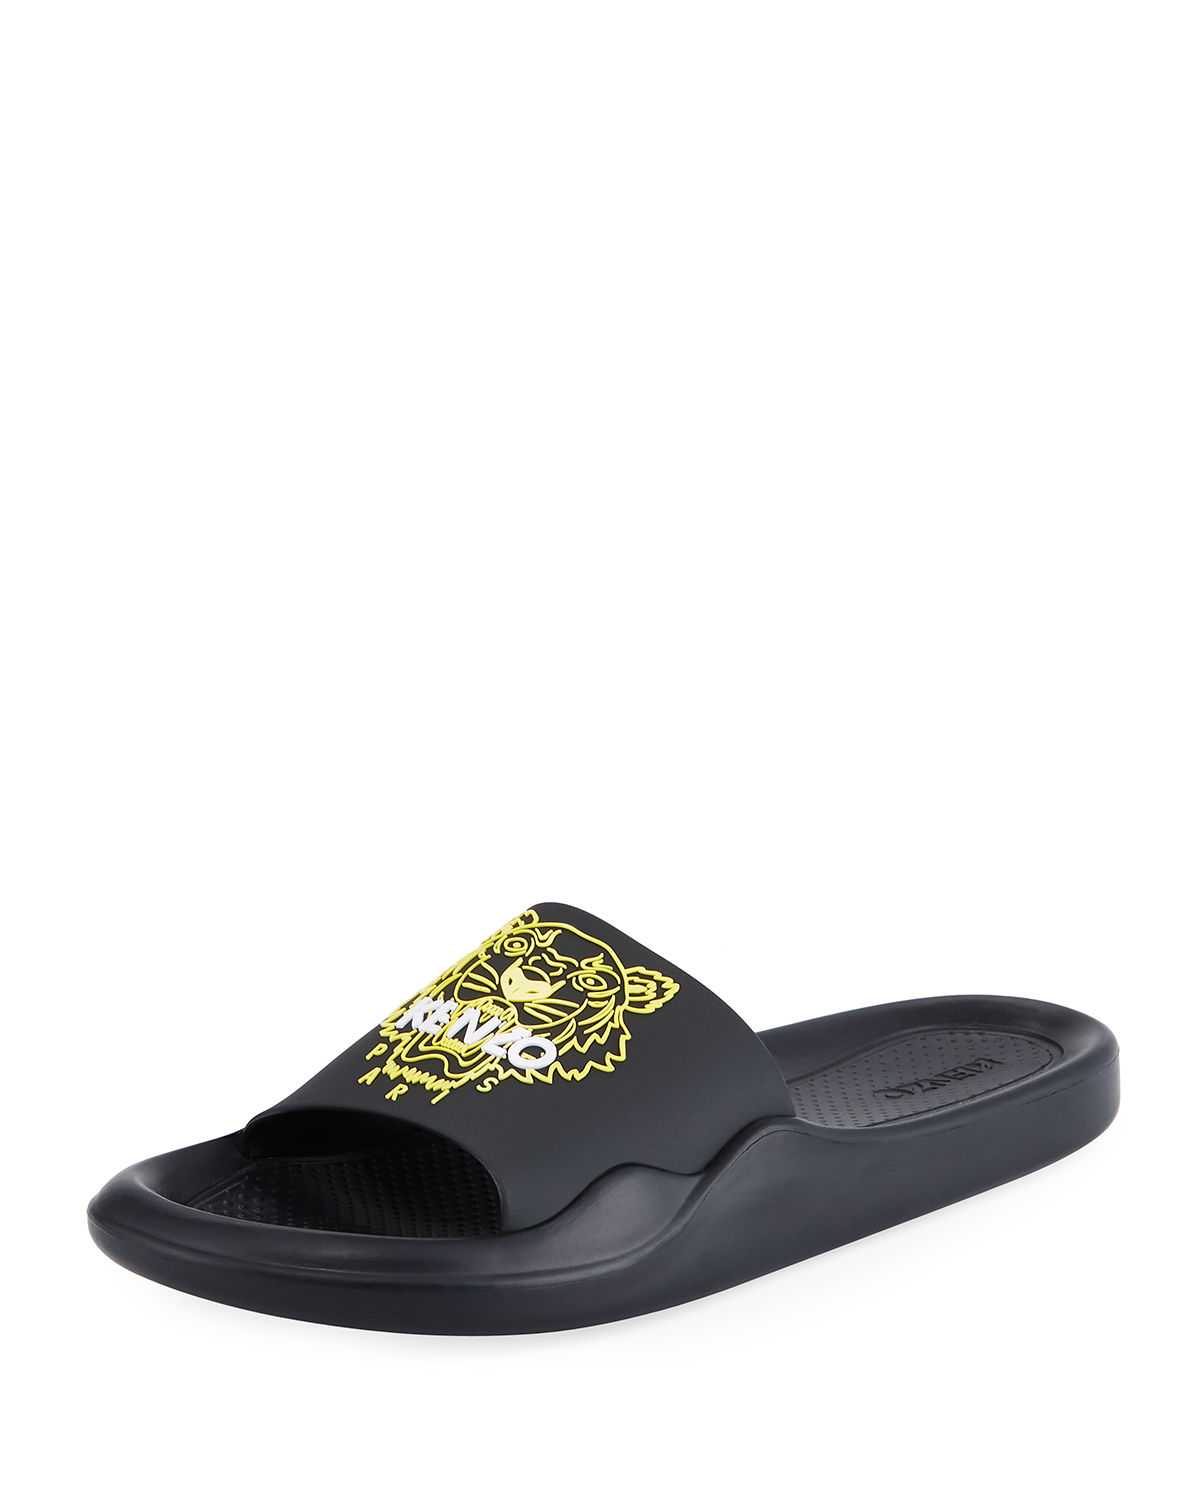 b9fbb3a7 Kenzo Men's Logo EVA Pool Slide Sandals | Neiman Marcus